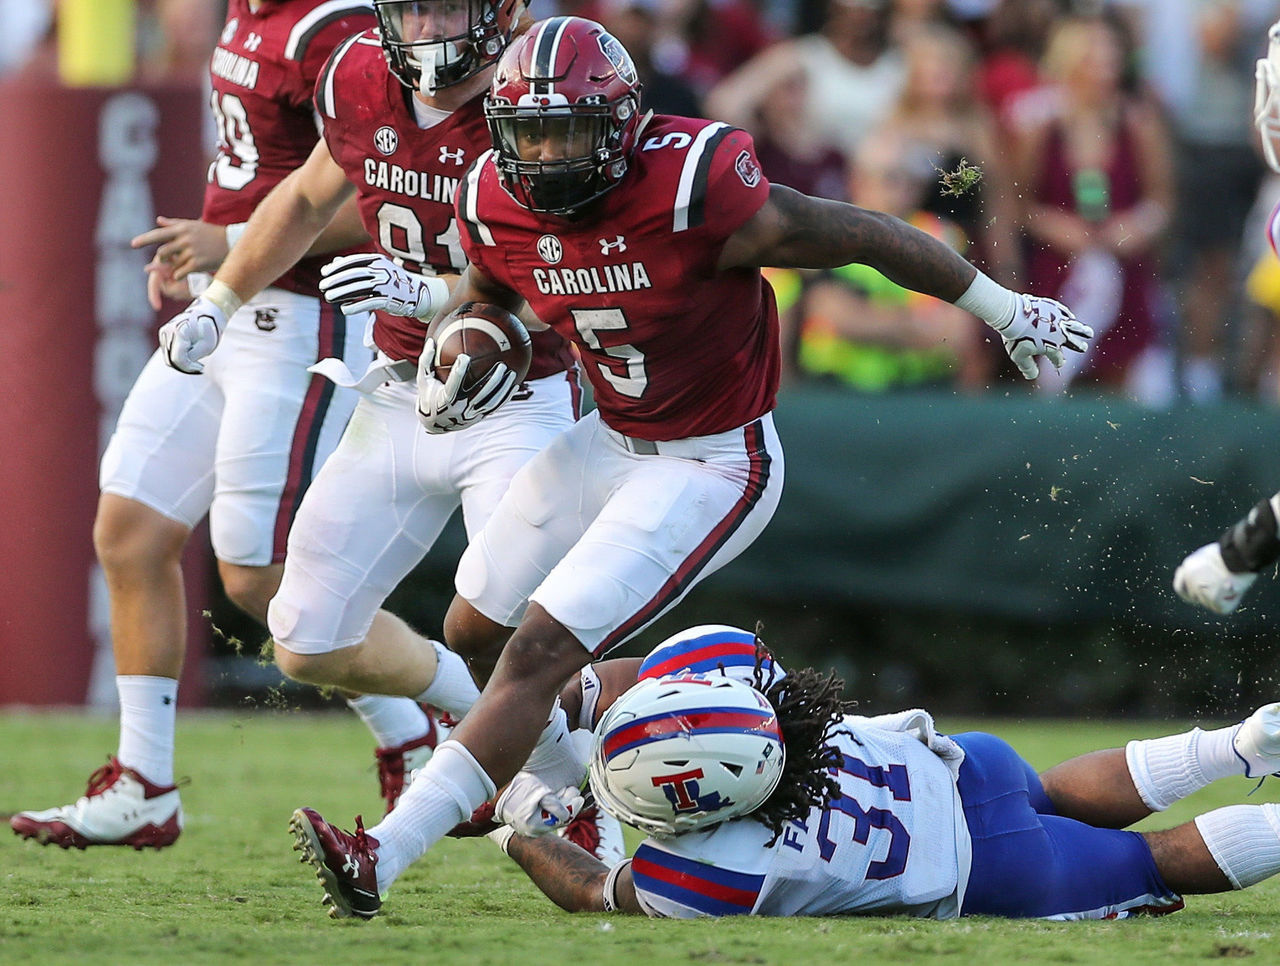 Cropped_2017-09-23t233845z_1059570930_nocid_rtrmadp_3_ncaa-football-louisiana-tech-at-south-carolina